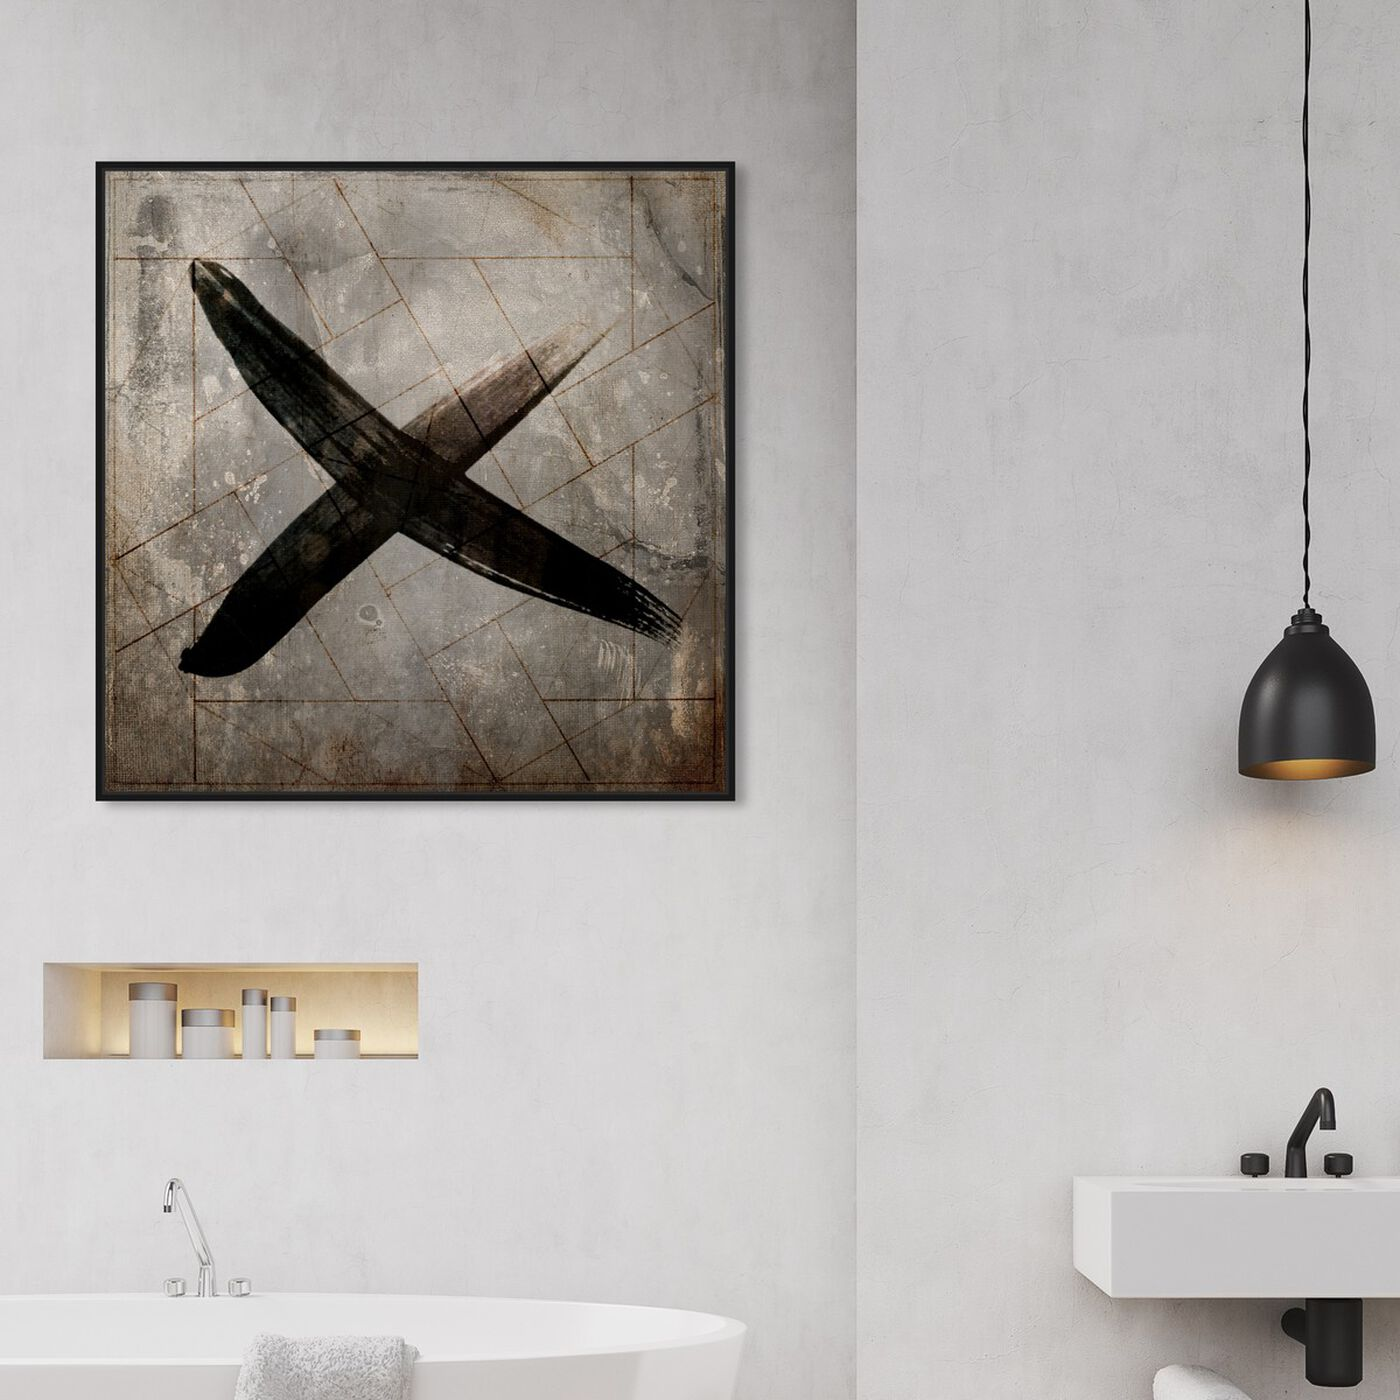 Hanging view of Cross featuring symbols and objects and shapes art.